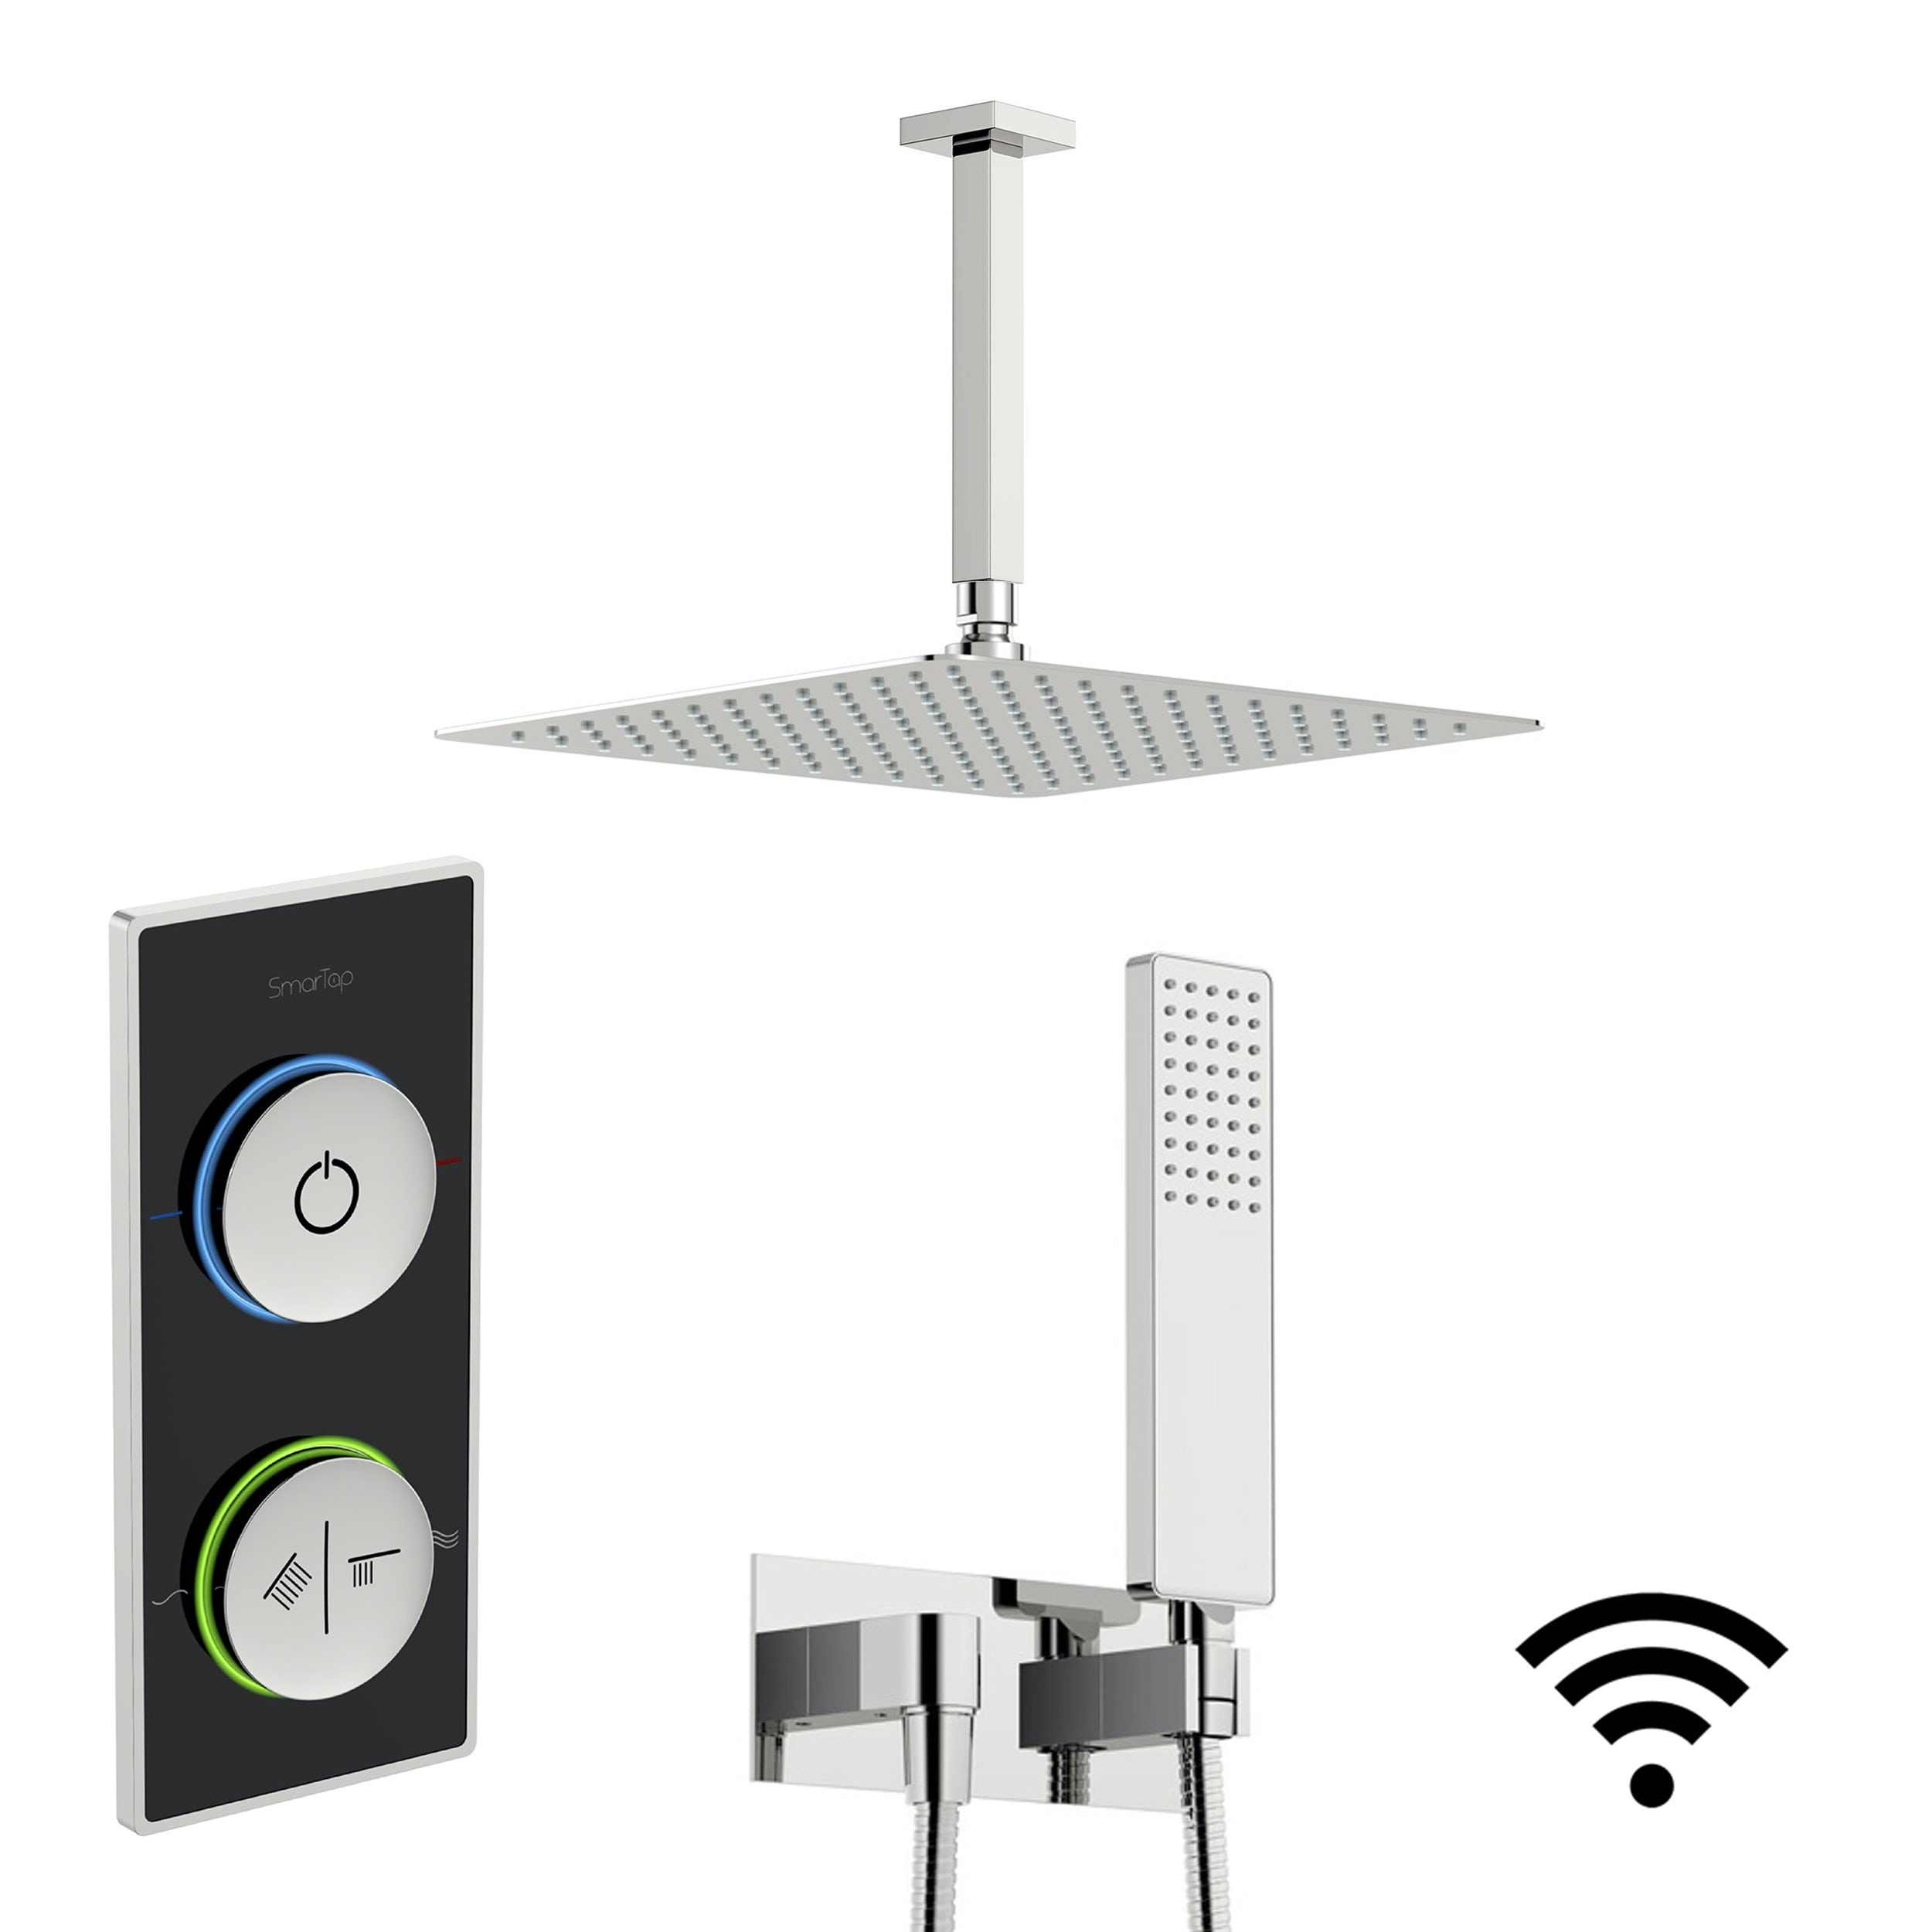 SmarTap black smart shower system with square wall outlet set